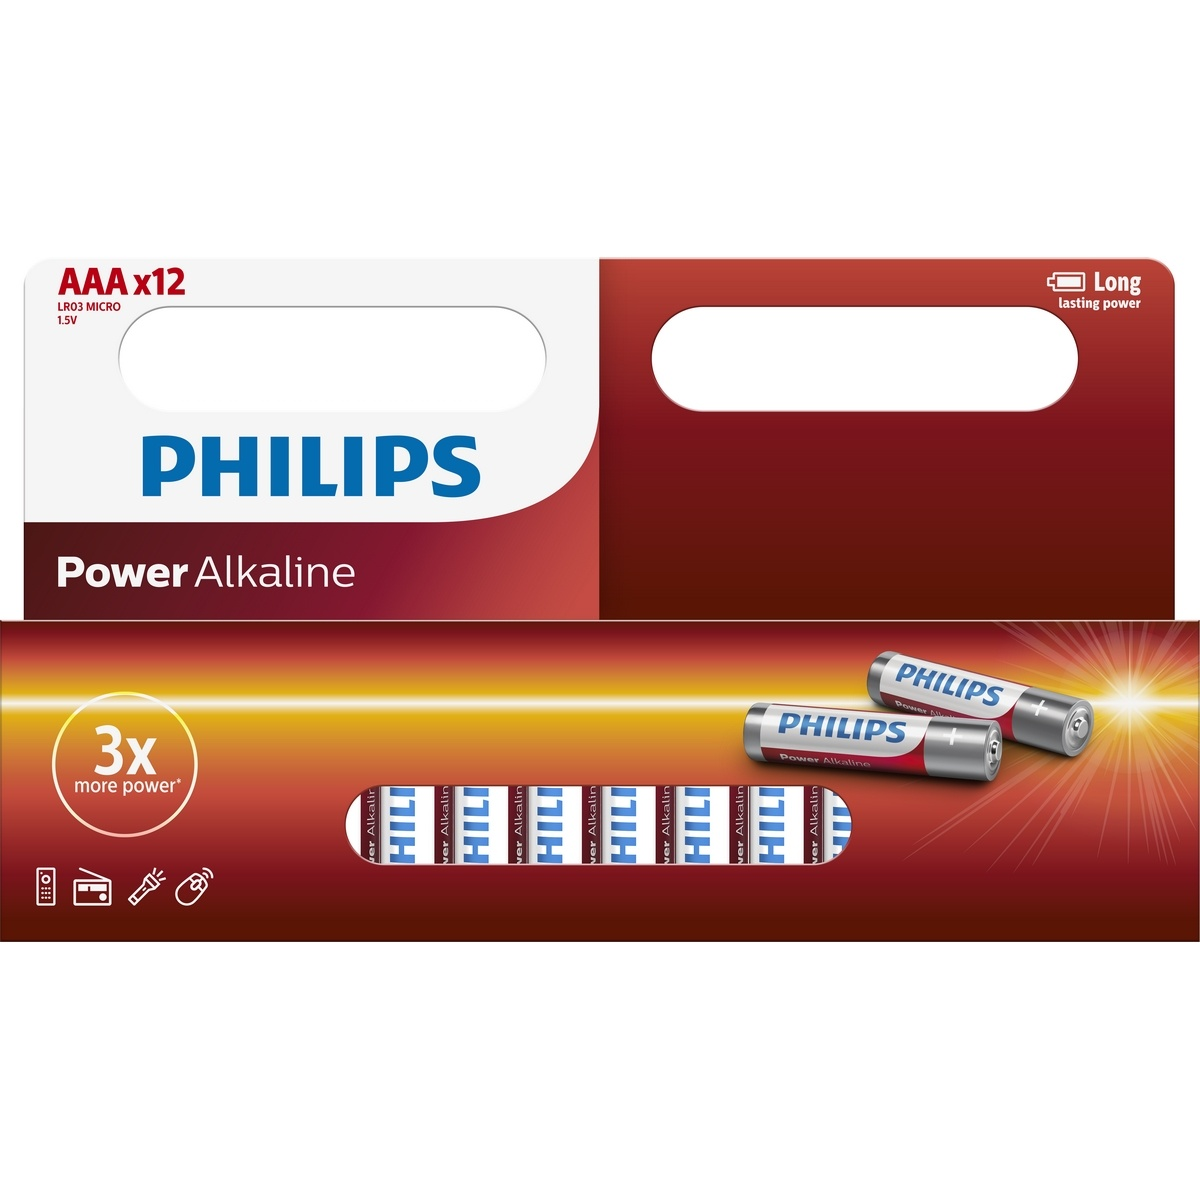 Philips baterie AAA Power Alkaline - 12ks LR03P12W10